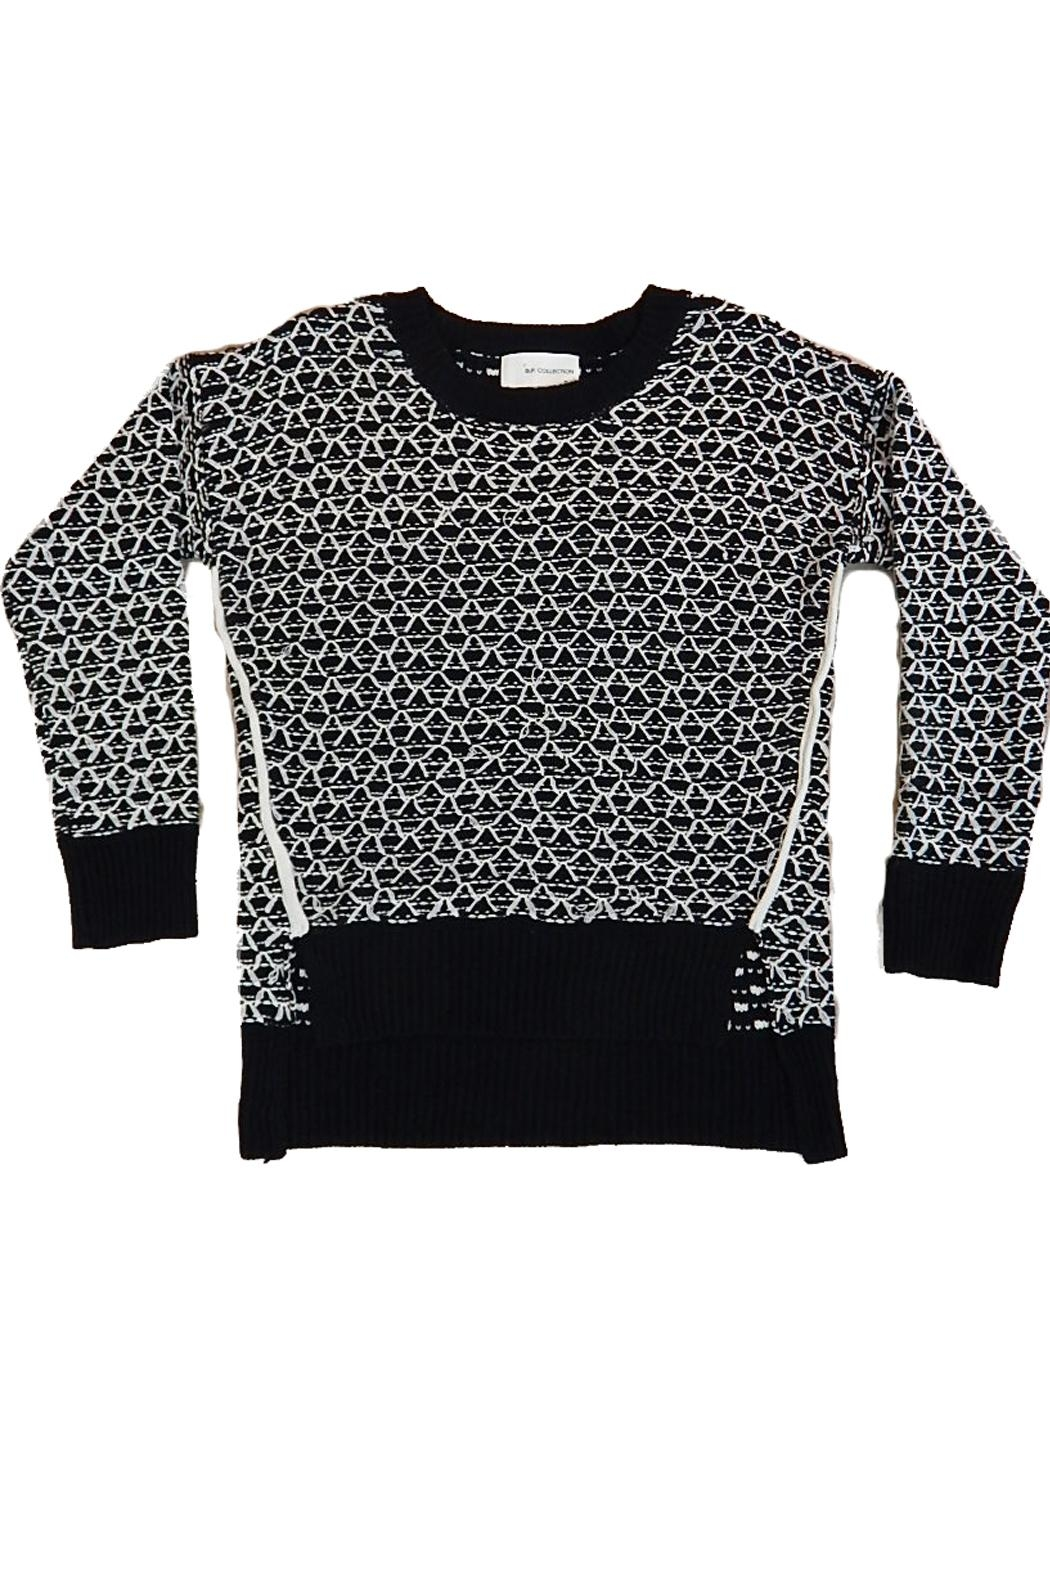 B.P. Collection Black White Sweater - Main Image